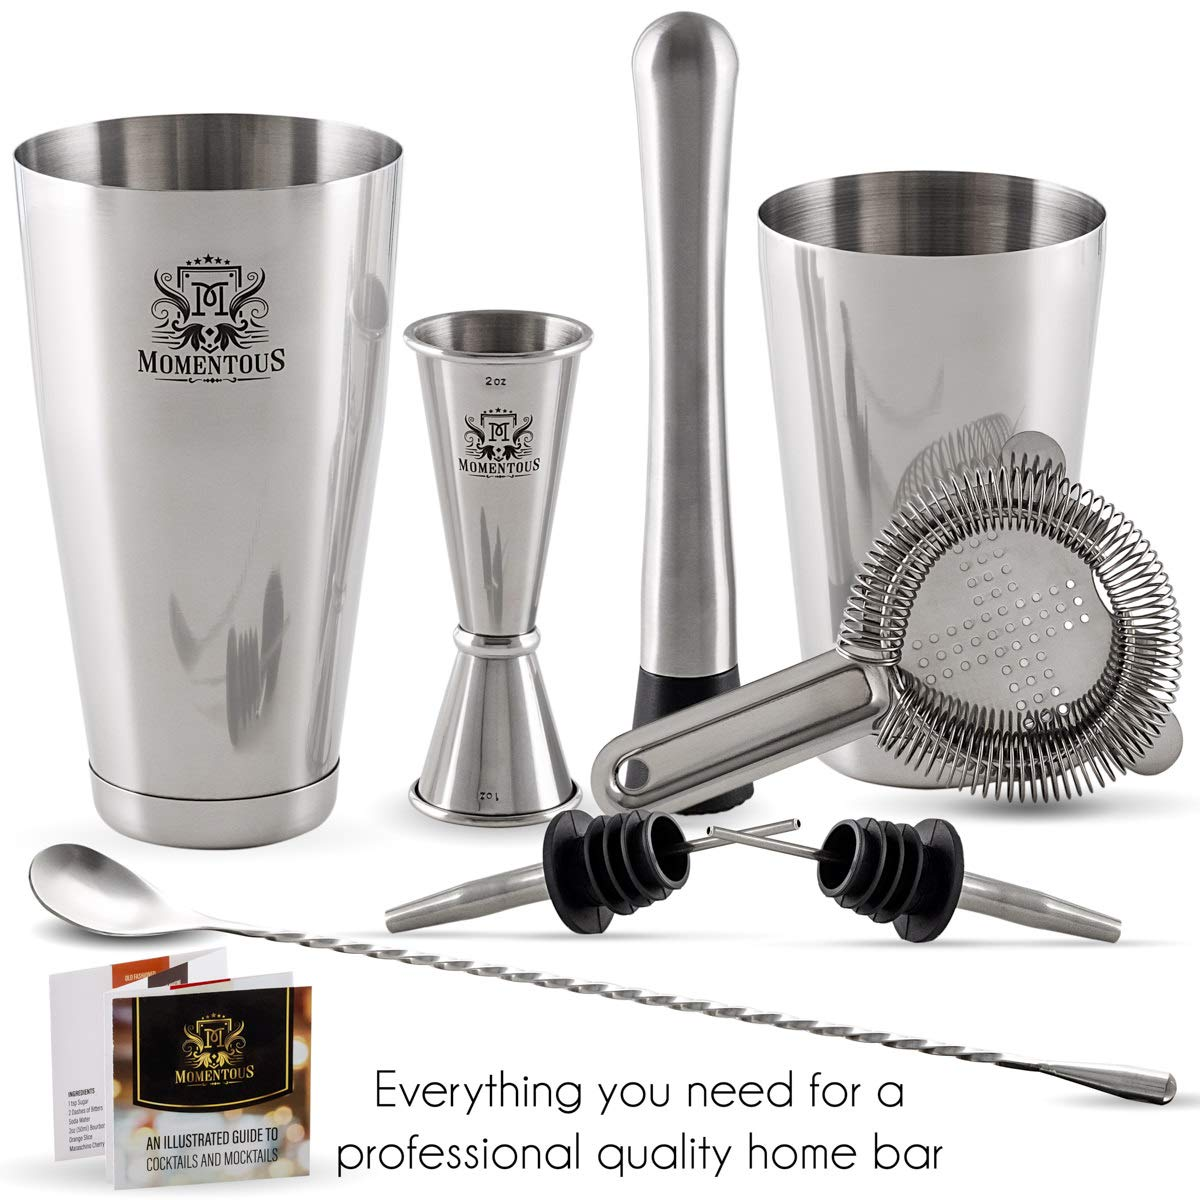 Muddler Premium Boston Cocktail Shaker Set by MomentouS Stainless Steel Mixology Bartender Kit with Weighted Shaker Tins Hawthorn Strainer Double Jigger 2 Pourers and Bonus Recipes Mixing Spoon